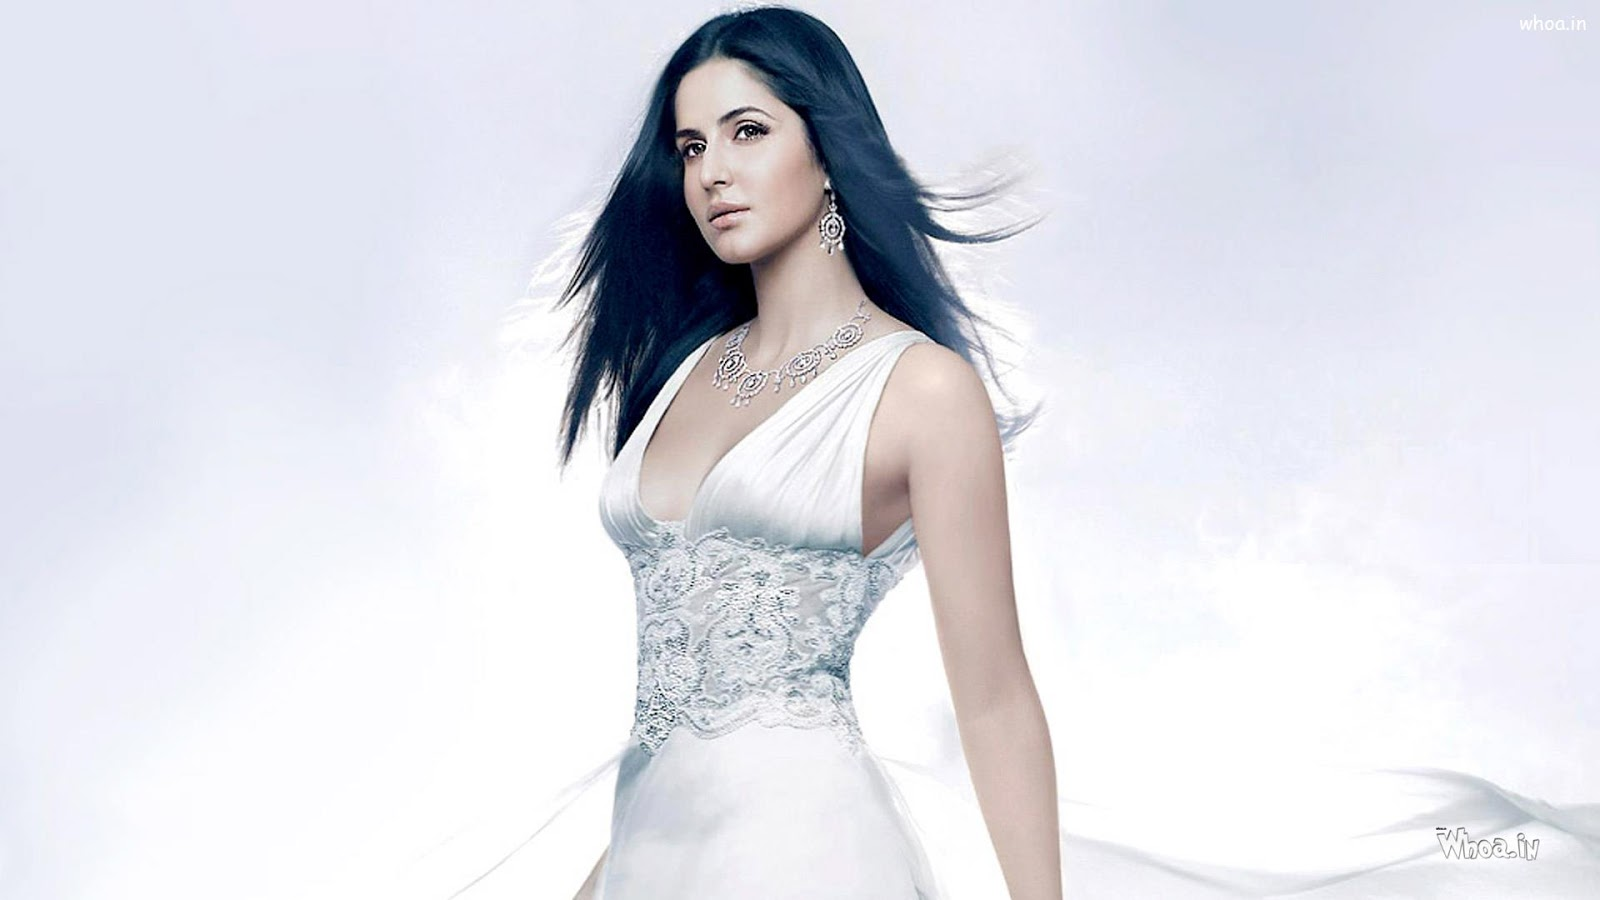 Bollywood Actress Katrina Kaif Hd Wallpapers, Hd Images -2127